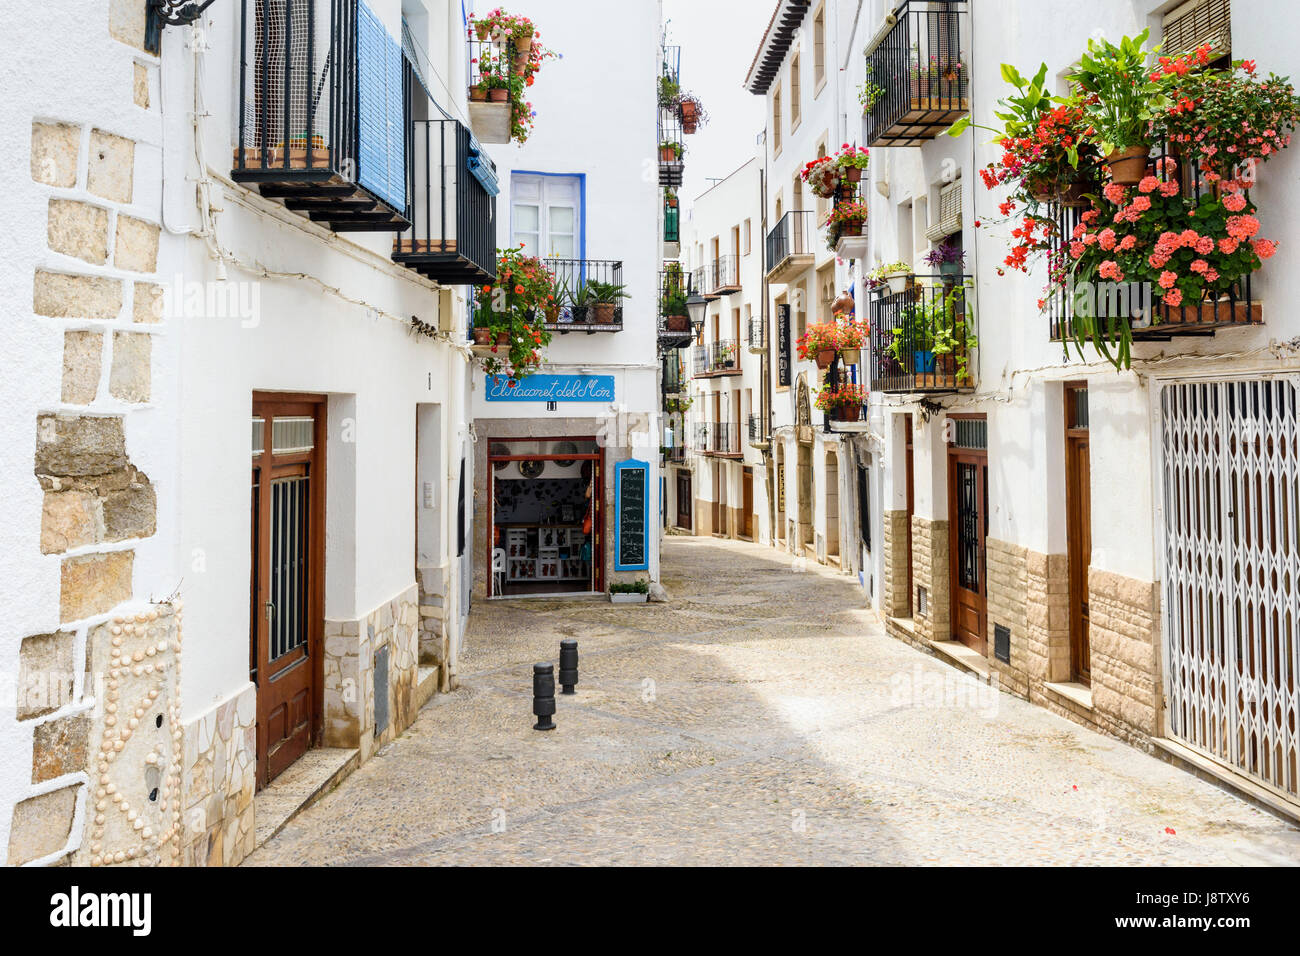 Picturesque cobbled street in the old town of Peniscola, Spain - Stock Image